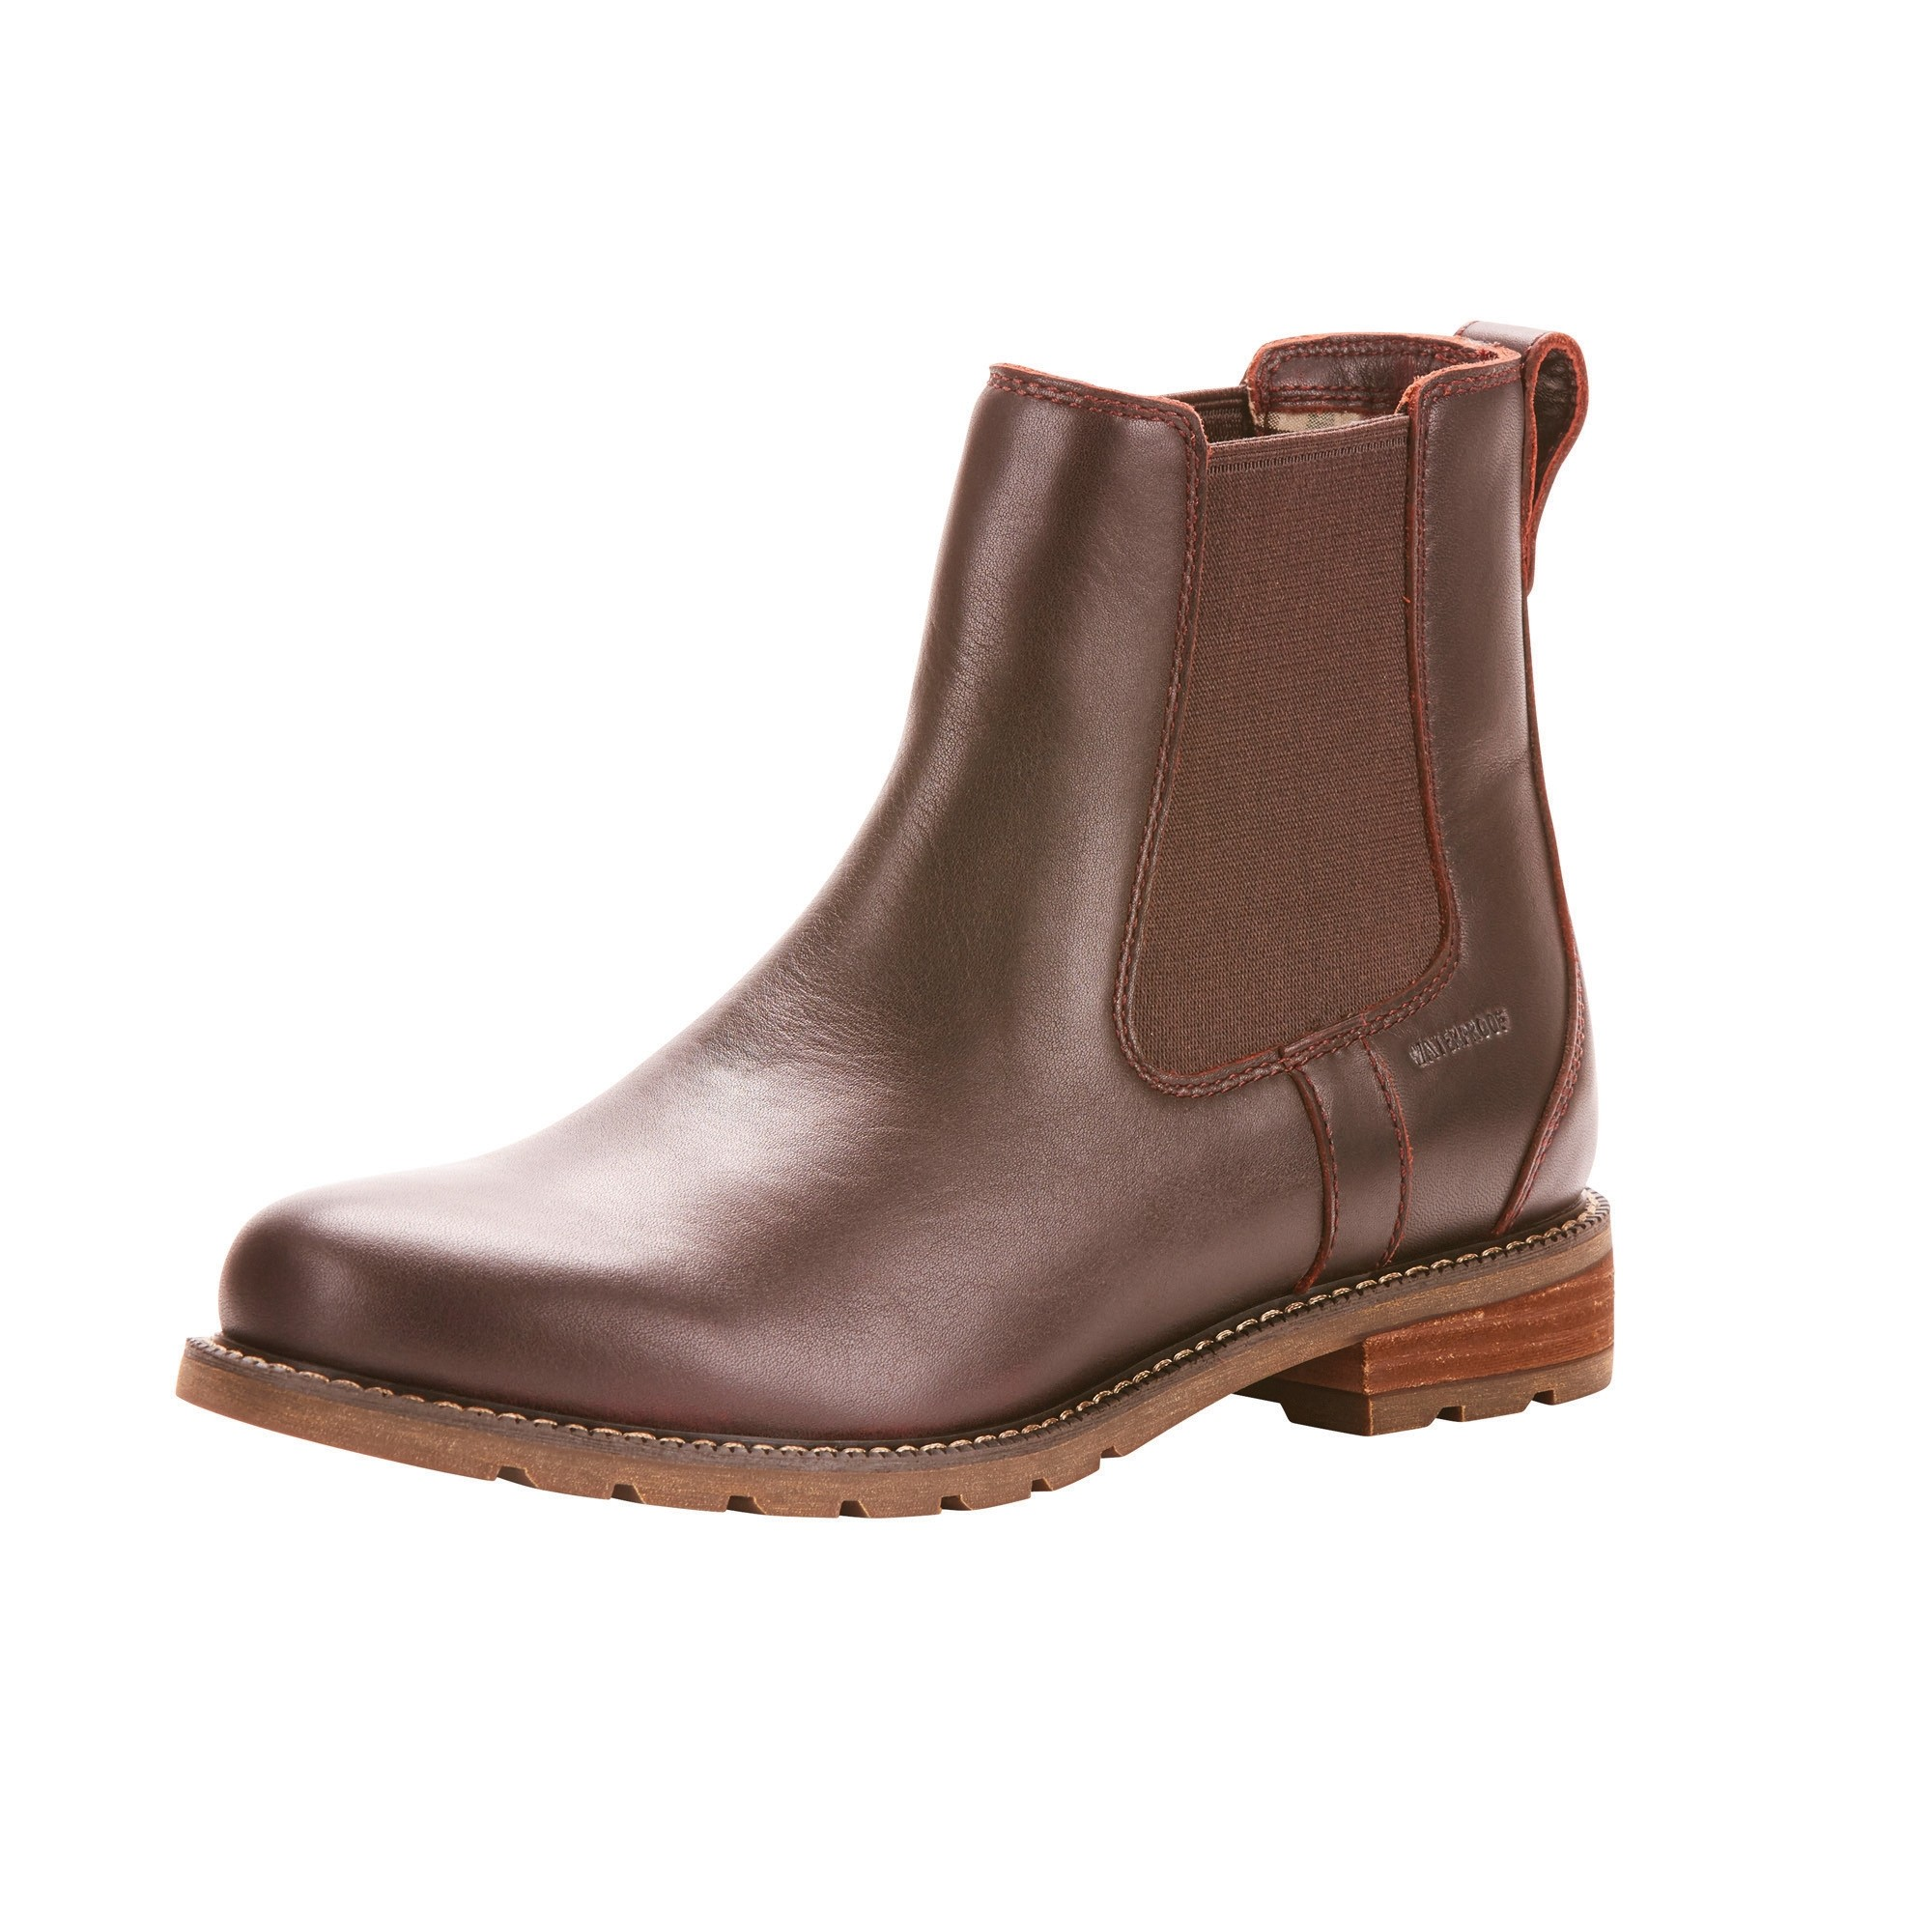 Ariat Womens Wexford Boots  - Thomas Irving's equestrian and accessories store  Ariat Womens Wexford Boots